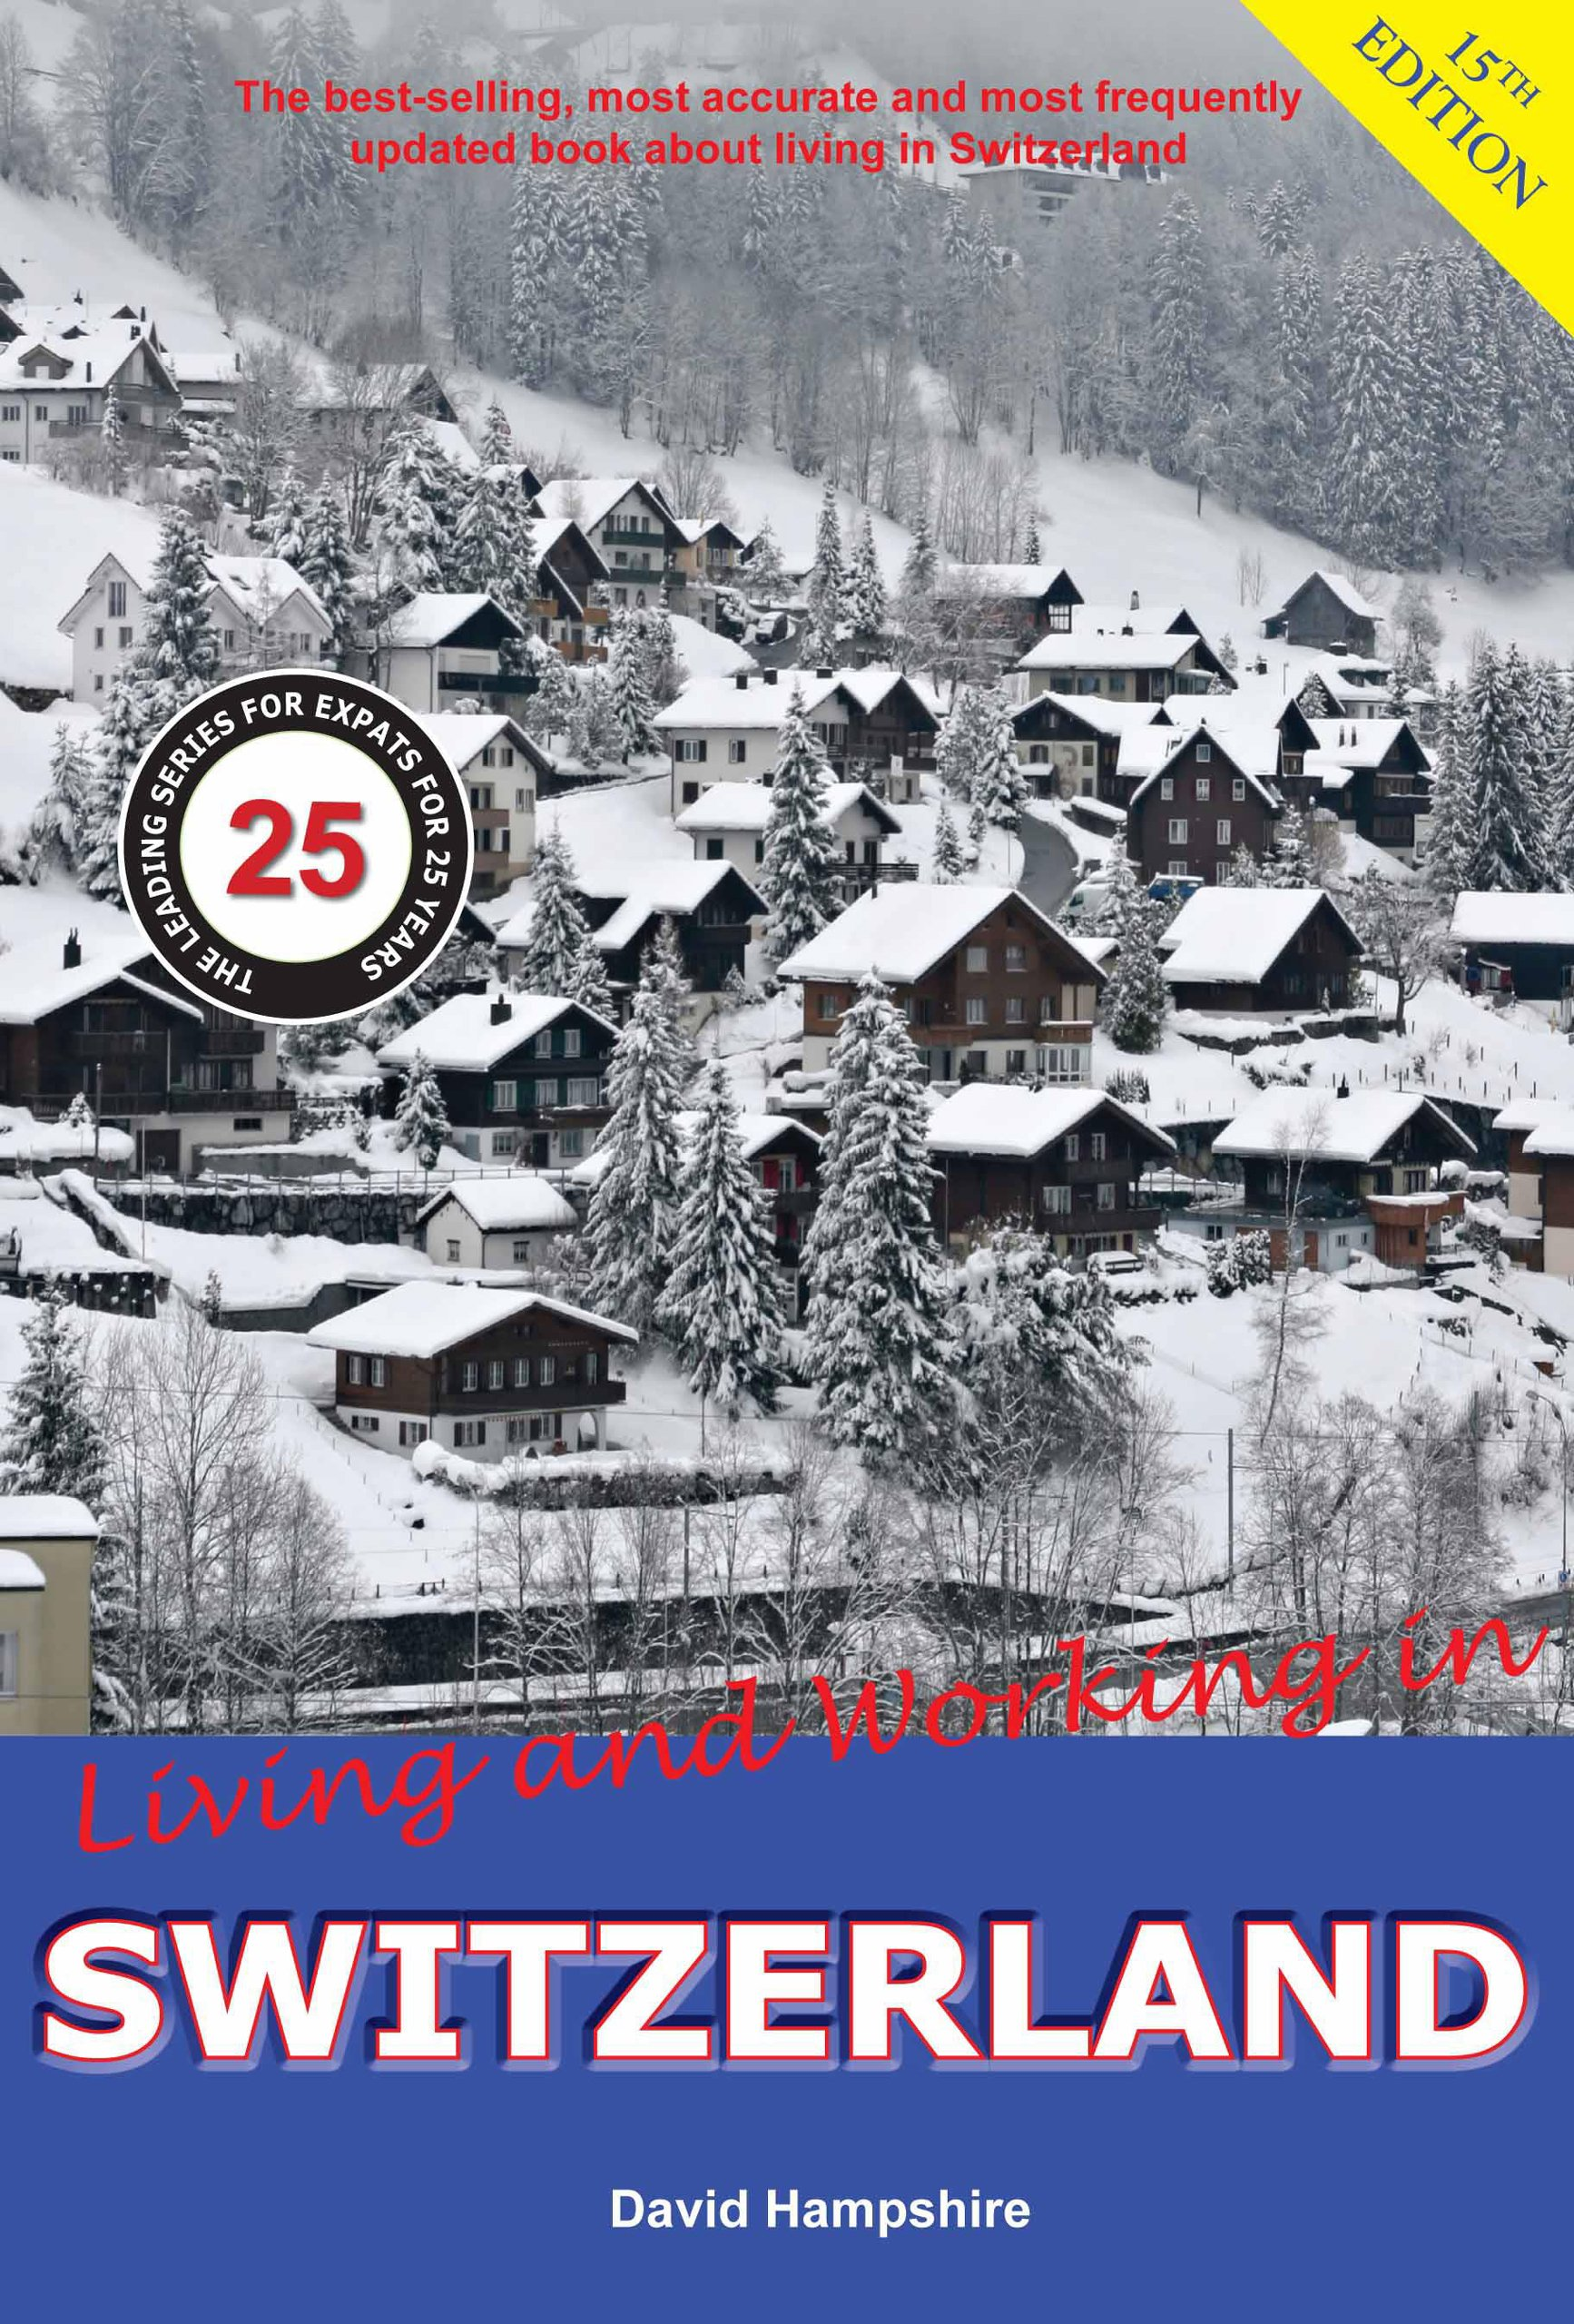 Living and Working in Switzerland: A Survival Handbook: Amazon.es: David Hampshire: Libros en idiomas extranjeros